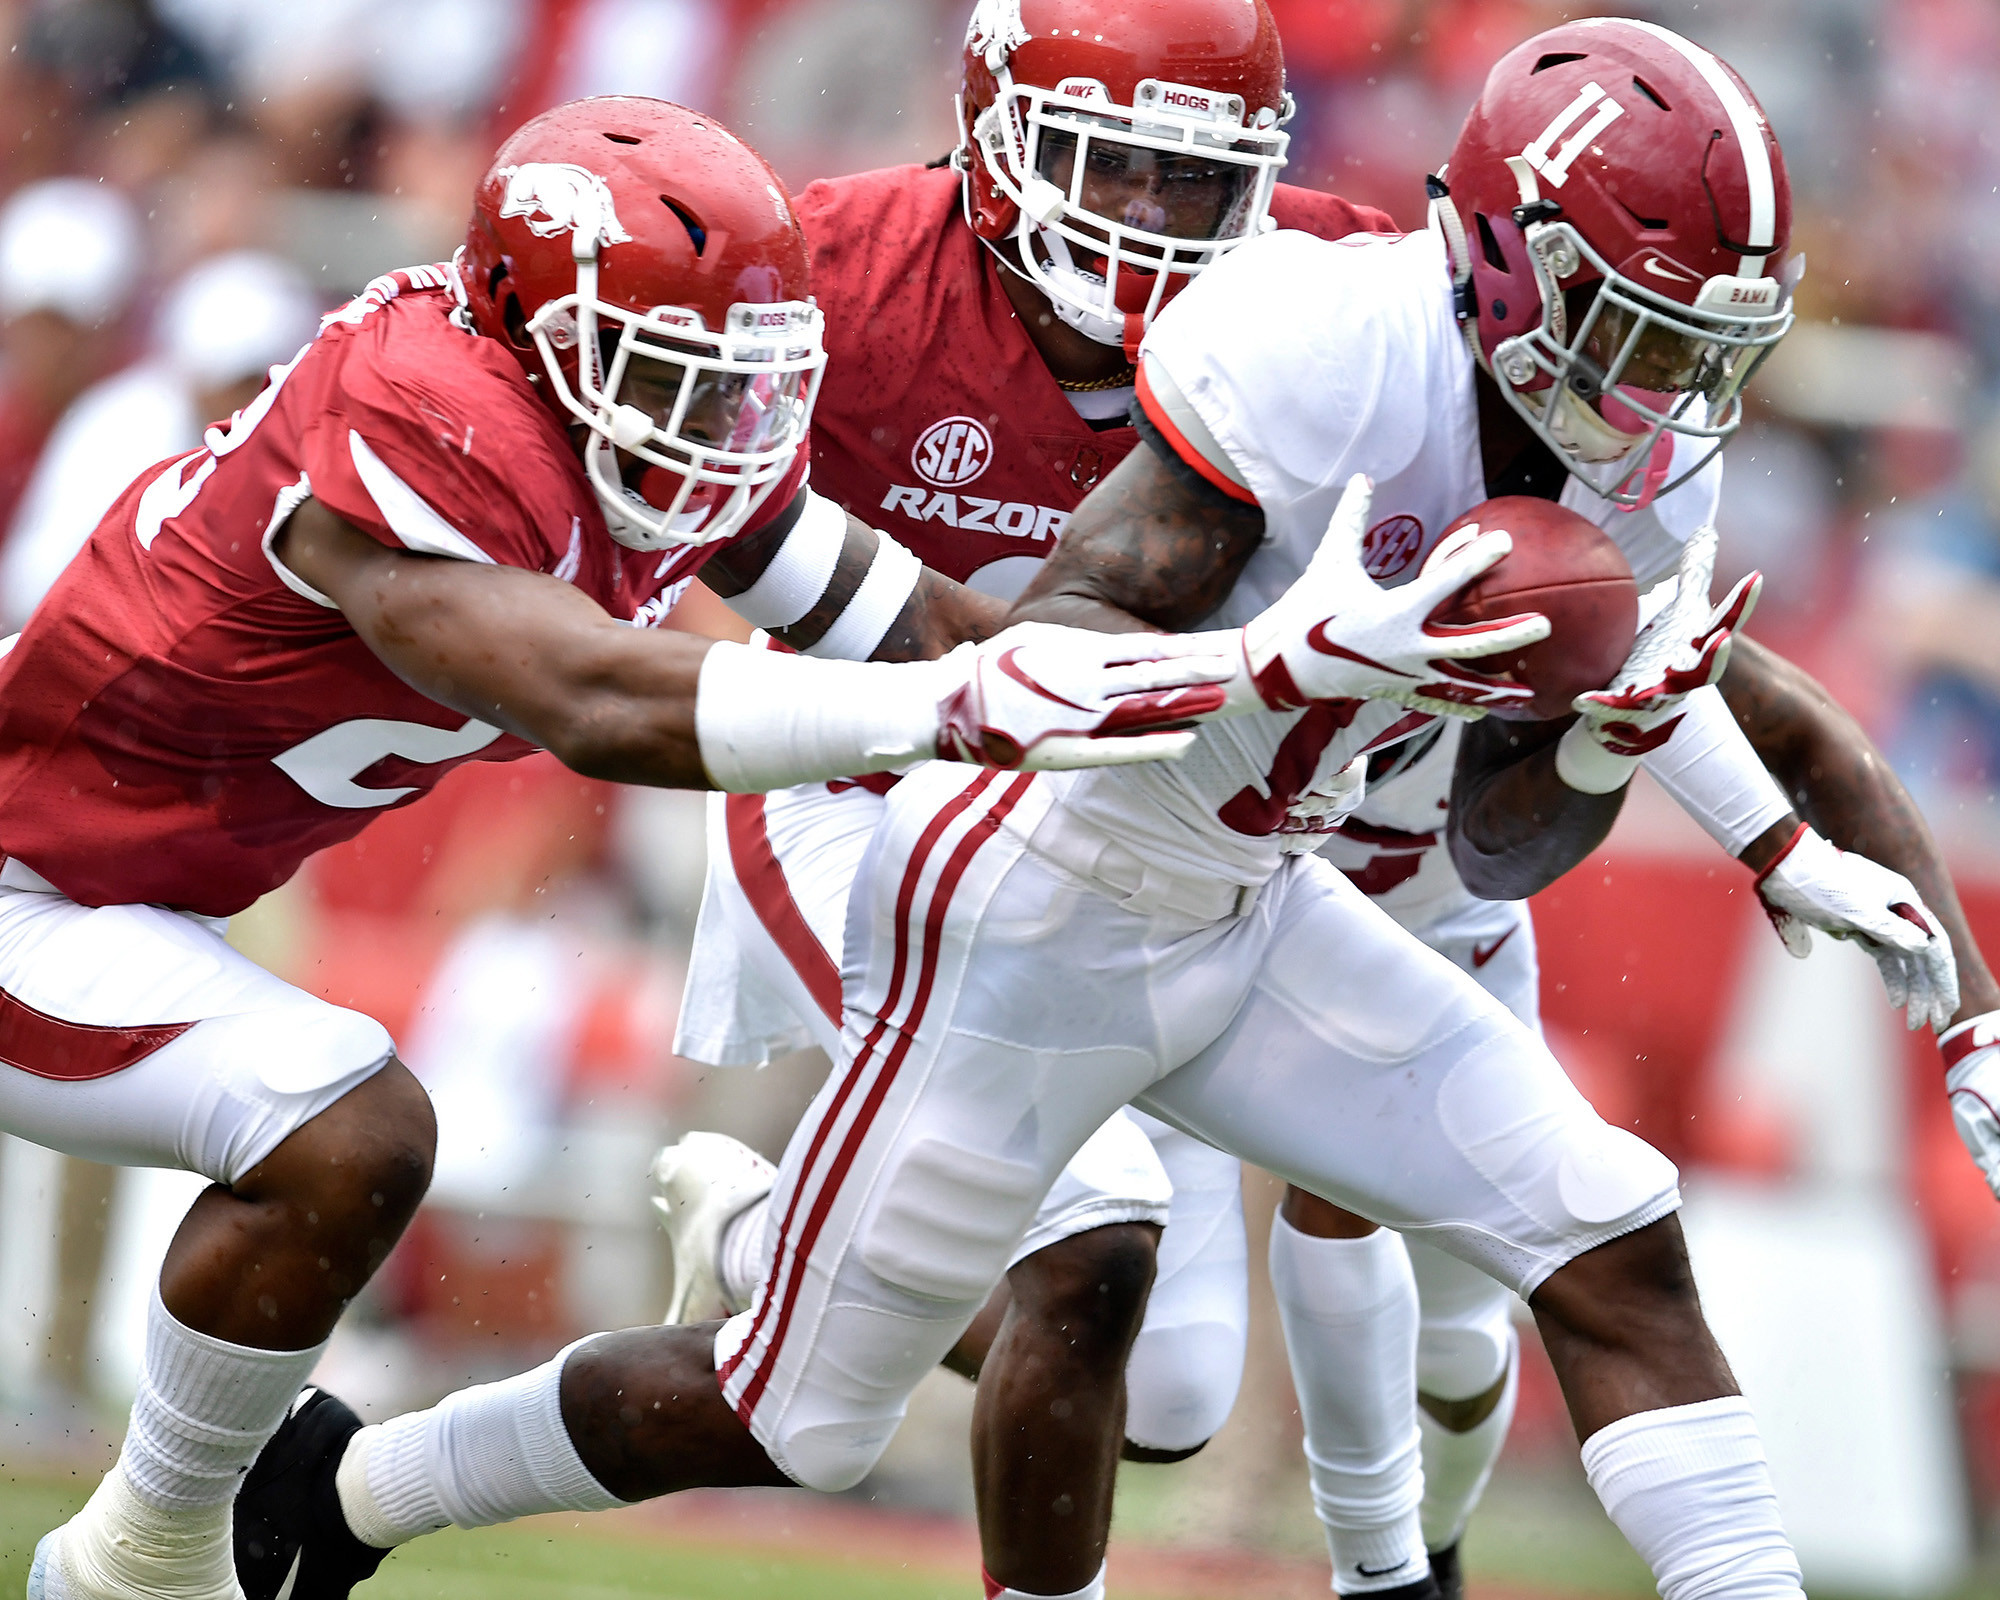 Alabama Crimson Tide wide receiver Henry Ruggs III (11) recovers a fumble and scores a touchdown during the first half of the NCAA football game at Razorback Stadium on Oct. 6, 2018, in Fayetteville, Ark. Alabama defeated Arkansas 65-31. (Photo by Lee Walls)